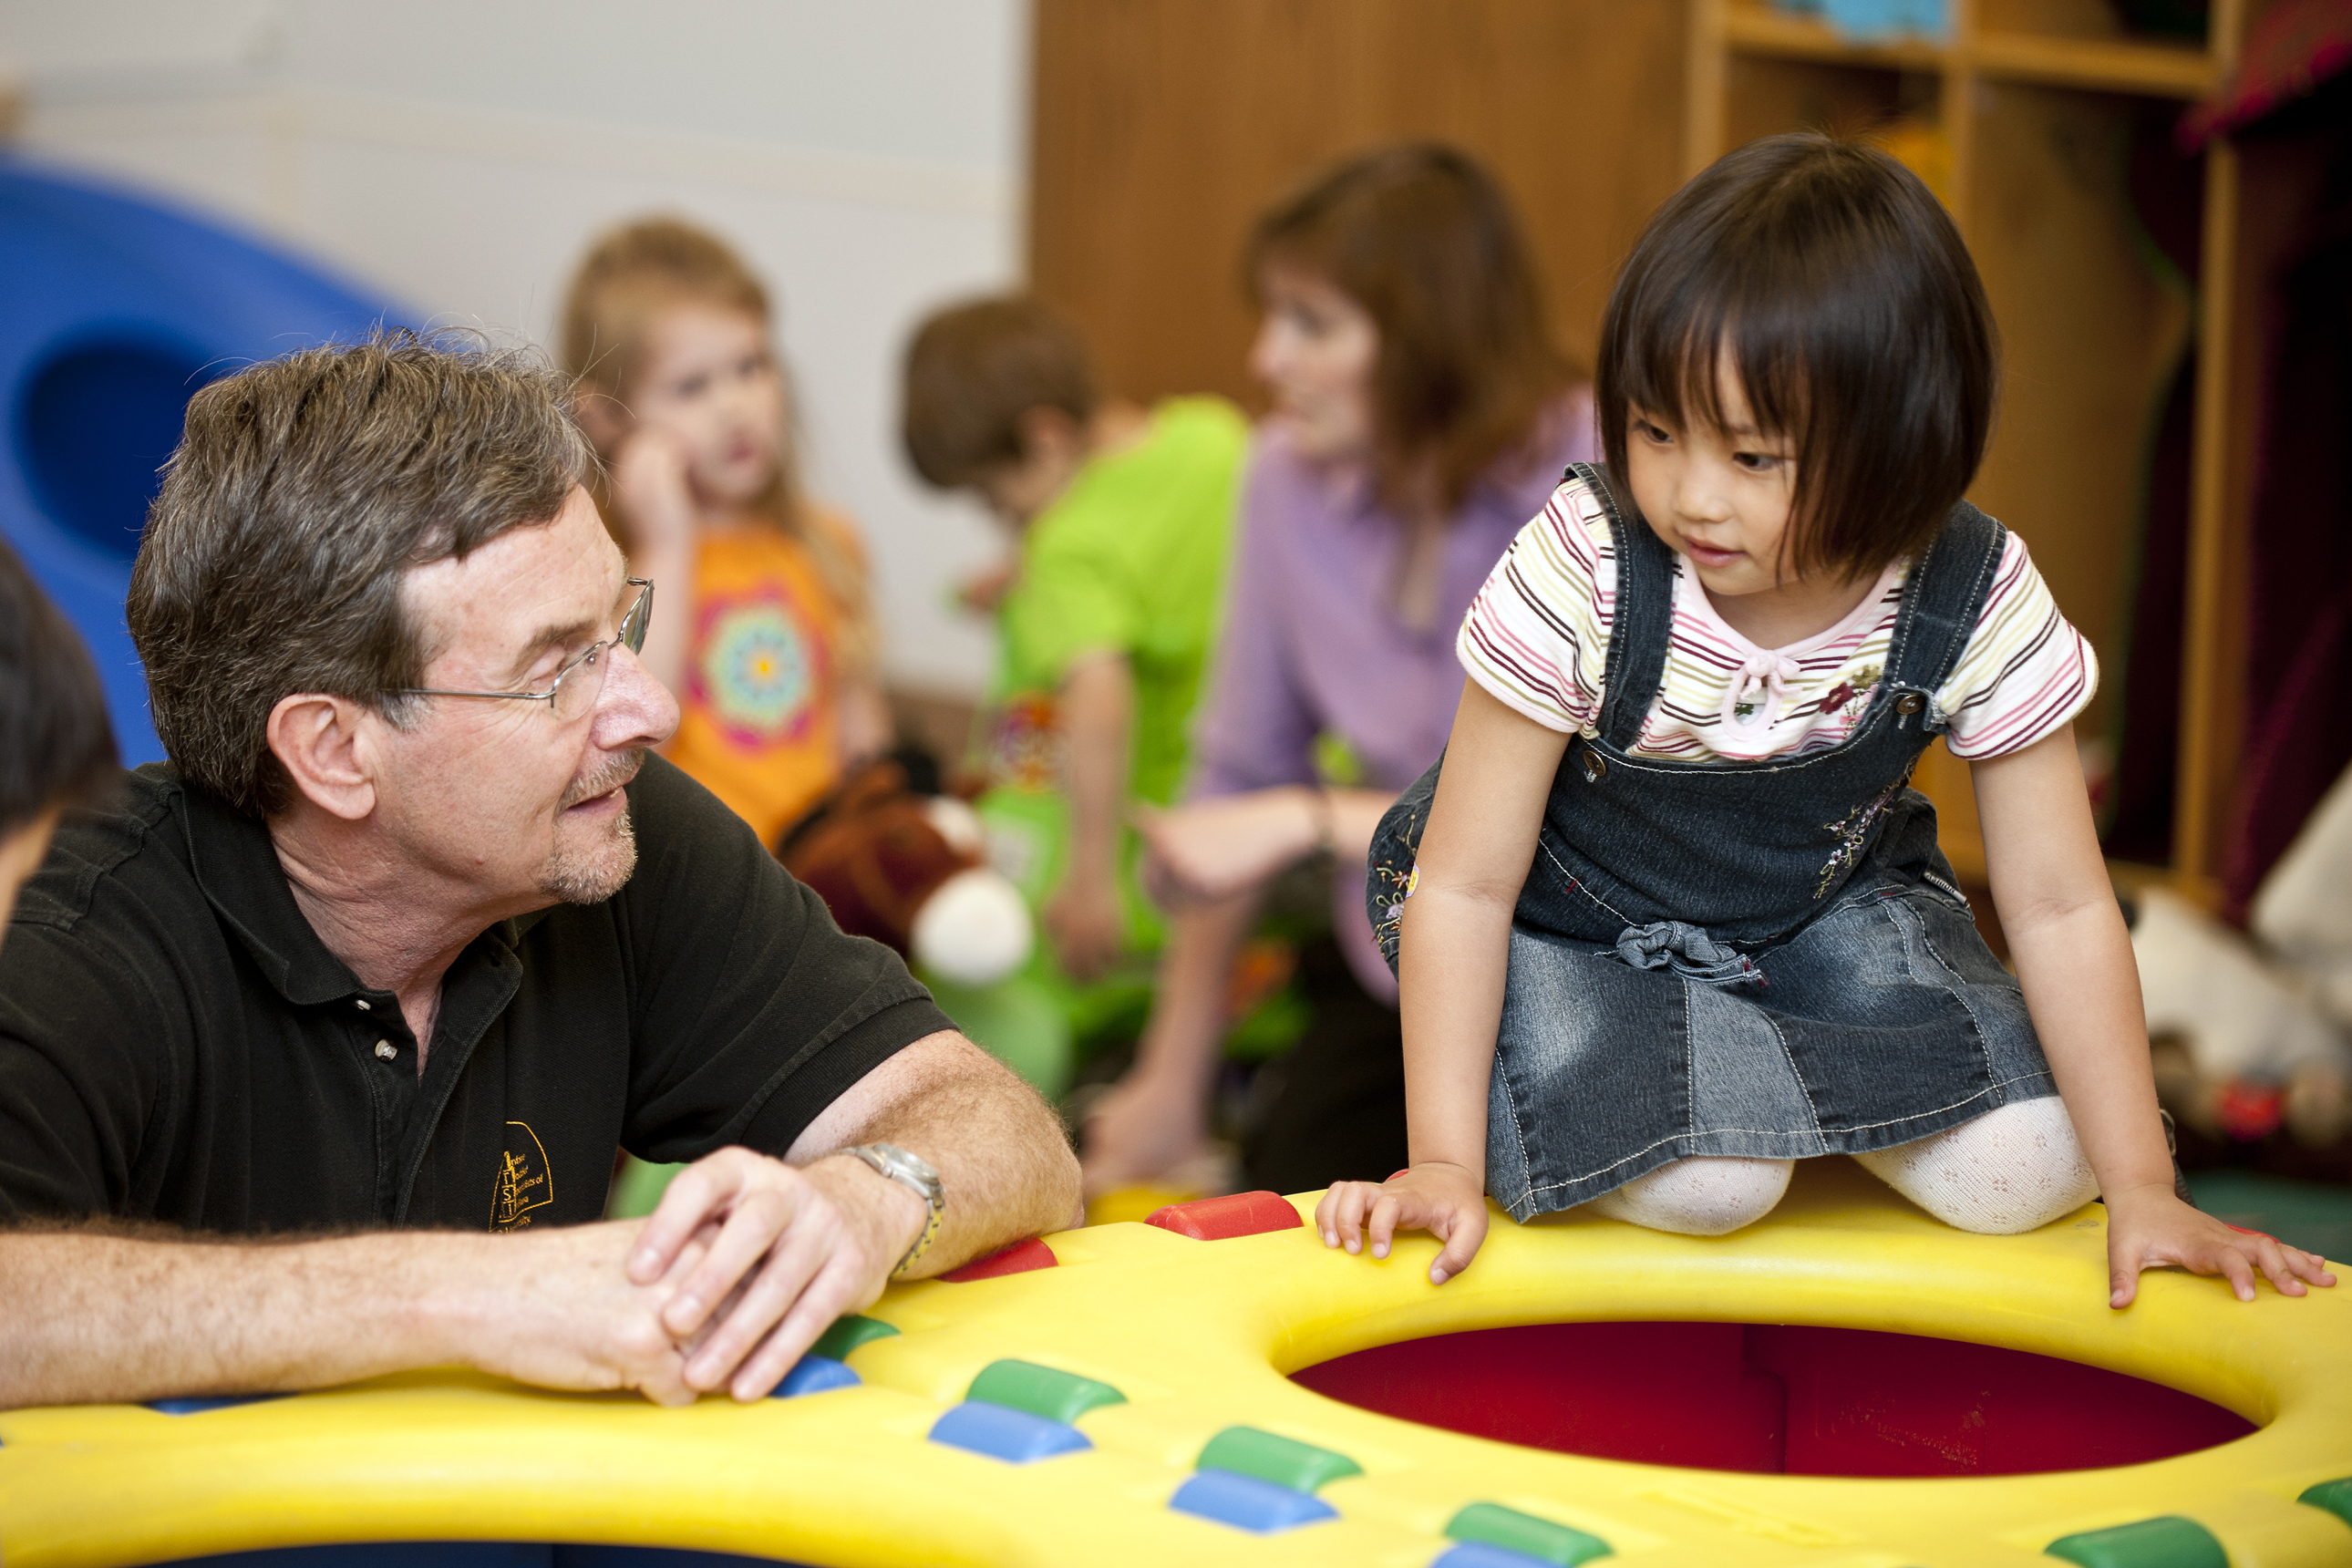 List of Free Online Child Care Courses and Classes - Study.com